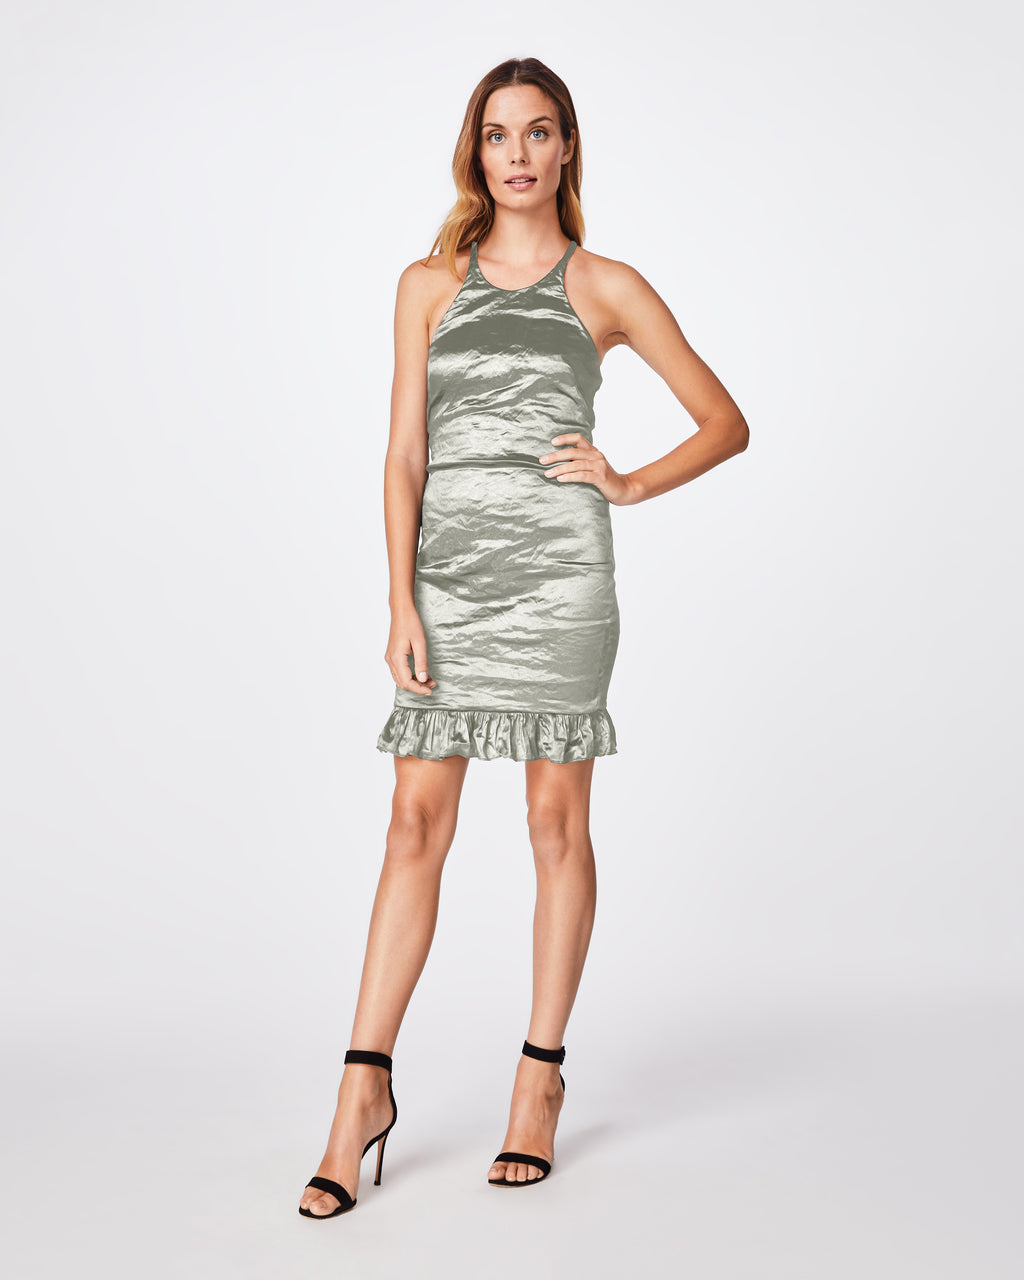 BT10121 - SOLID TECHNO METAL RACERBACK DRESS - dresses - short - This racerback dress comes in our solid techno metal fabric. The ruffle at the bottom adds a feminine touch. Fully lined with concealed back zipper.